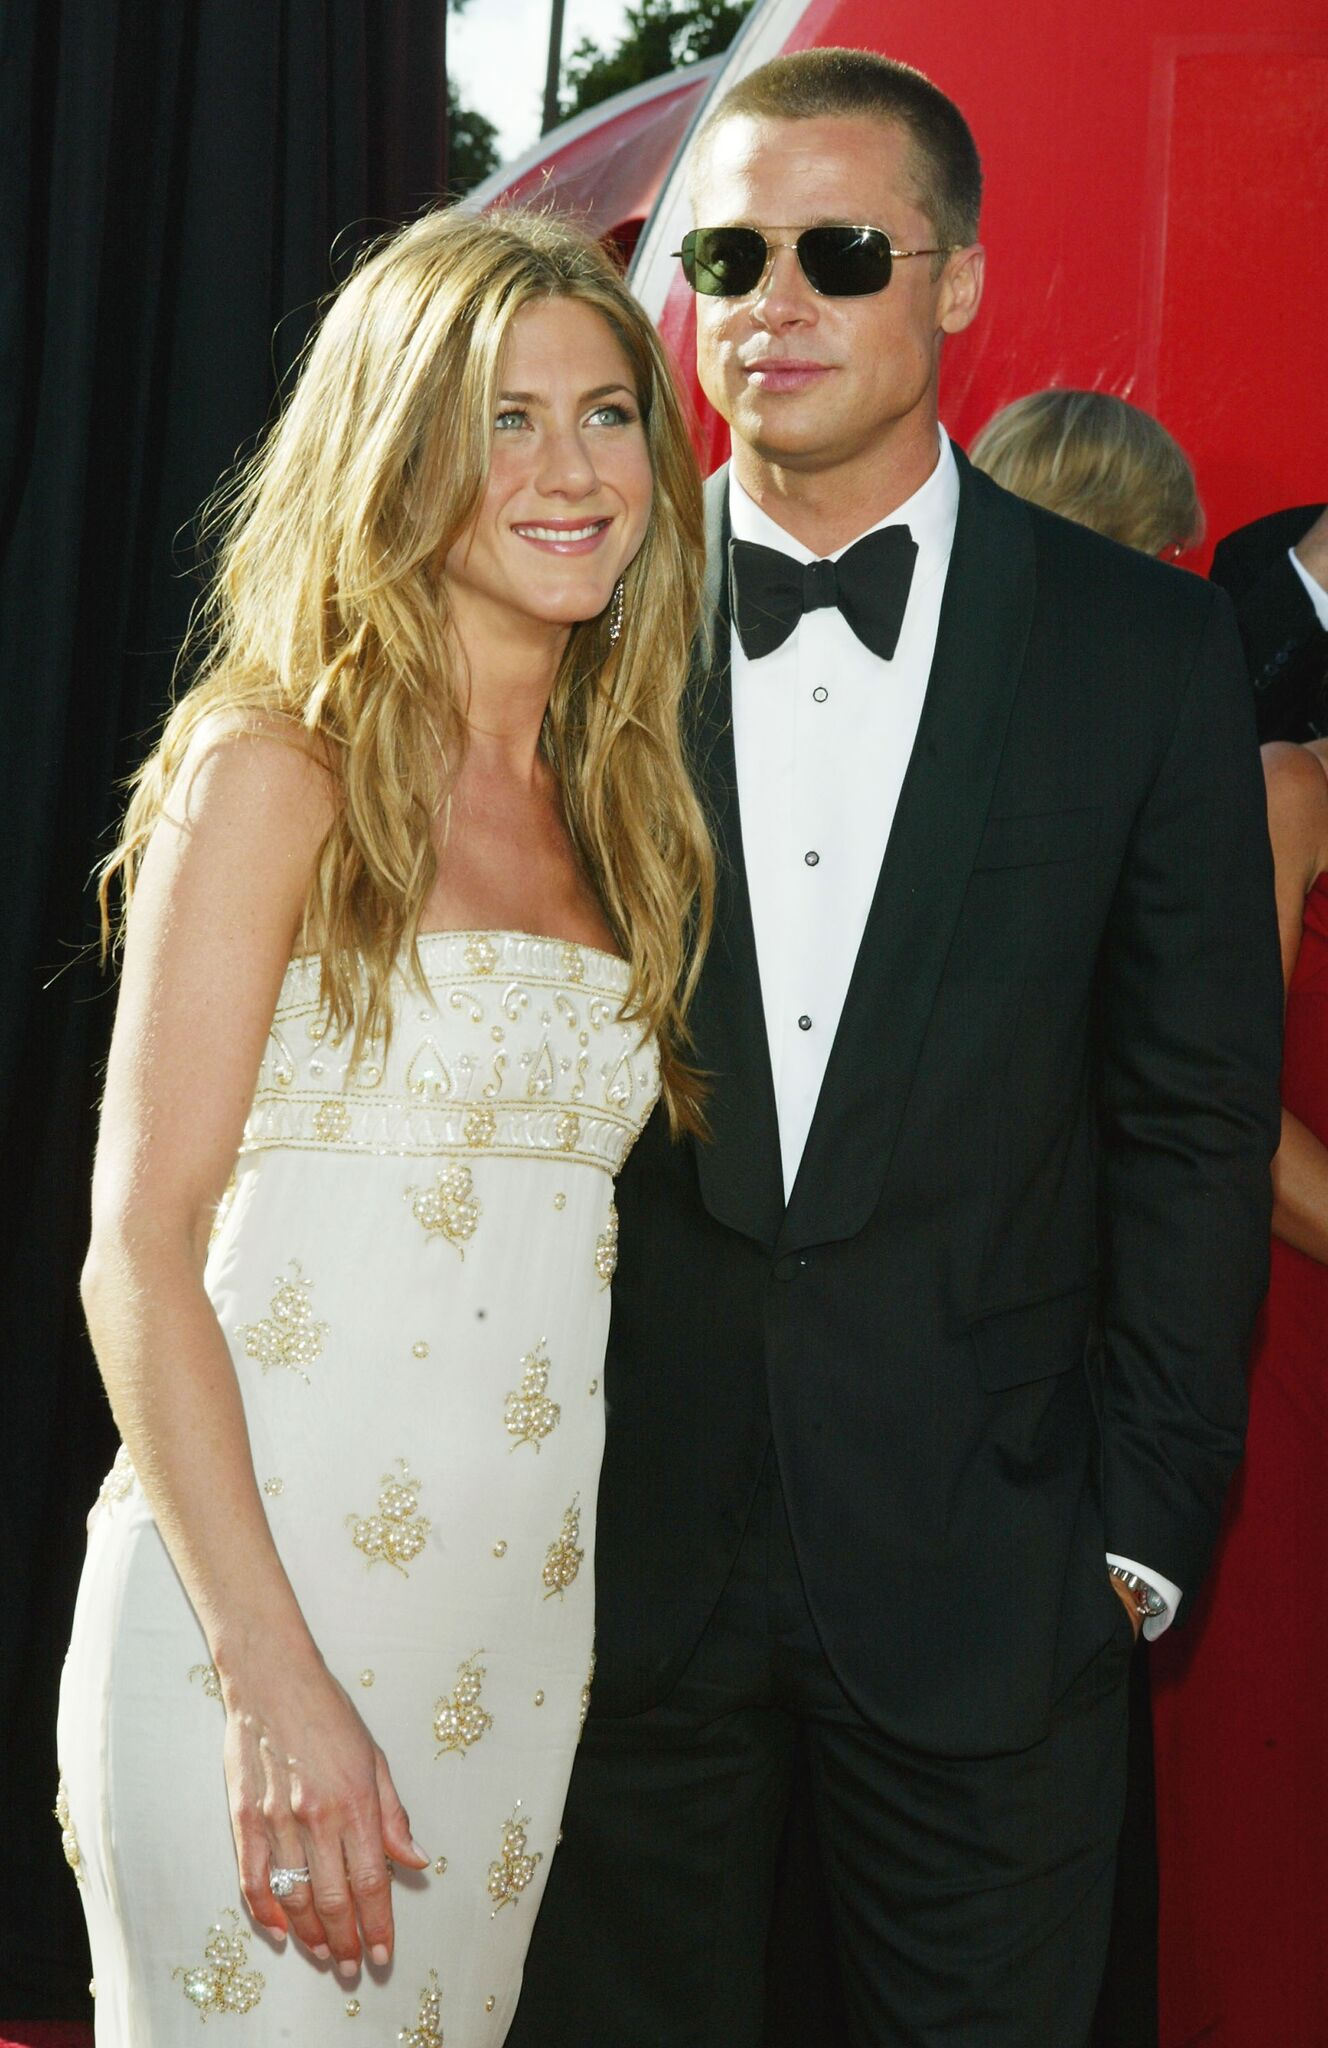 Actors Jennifer Aniston and husband Brad Pitt attend the 56th Annual Primetime Emmy Awards at the Shrine Auditorium | Getty Images